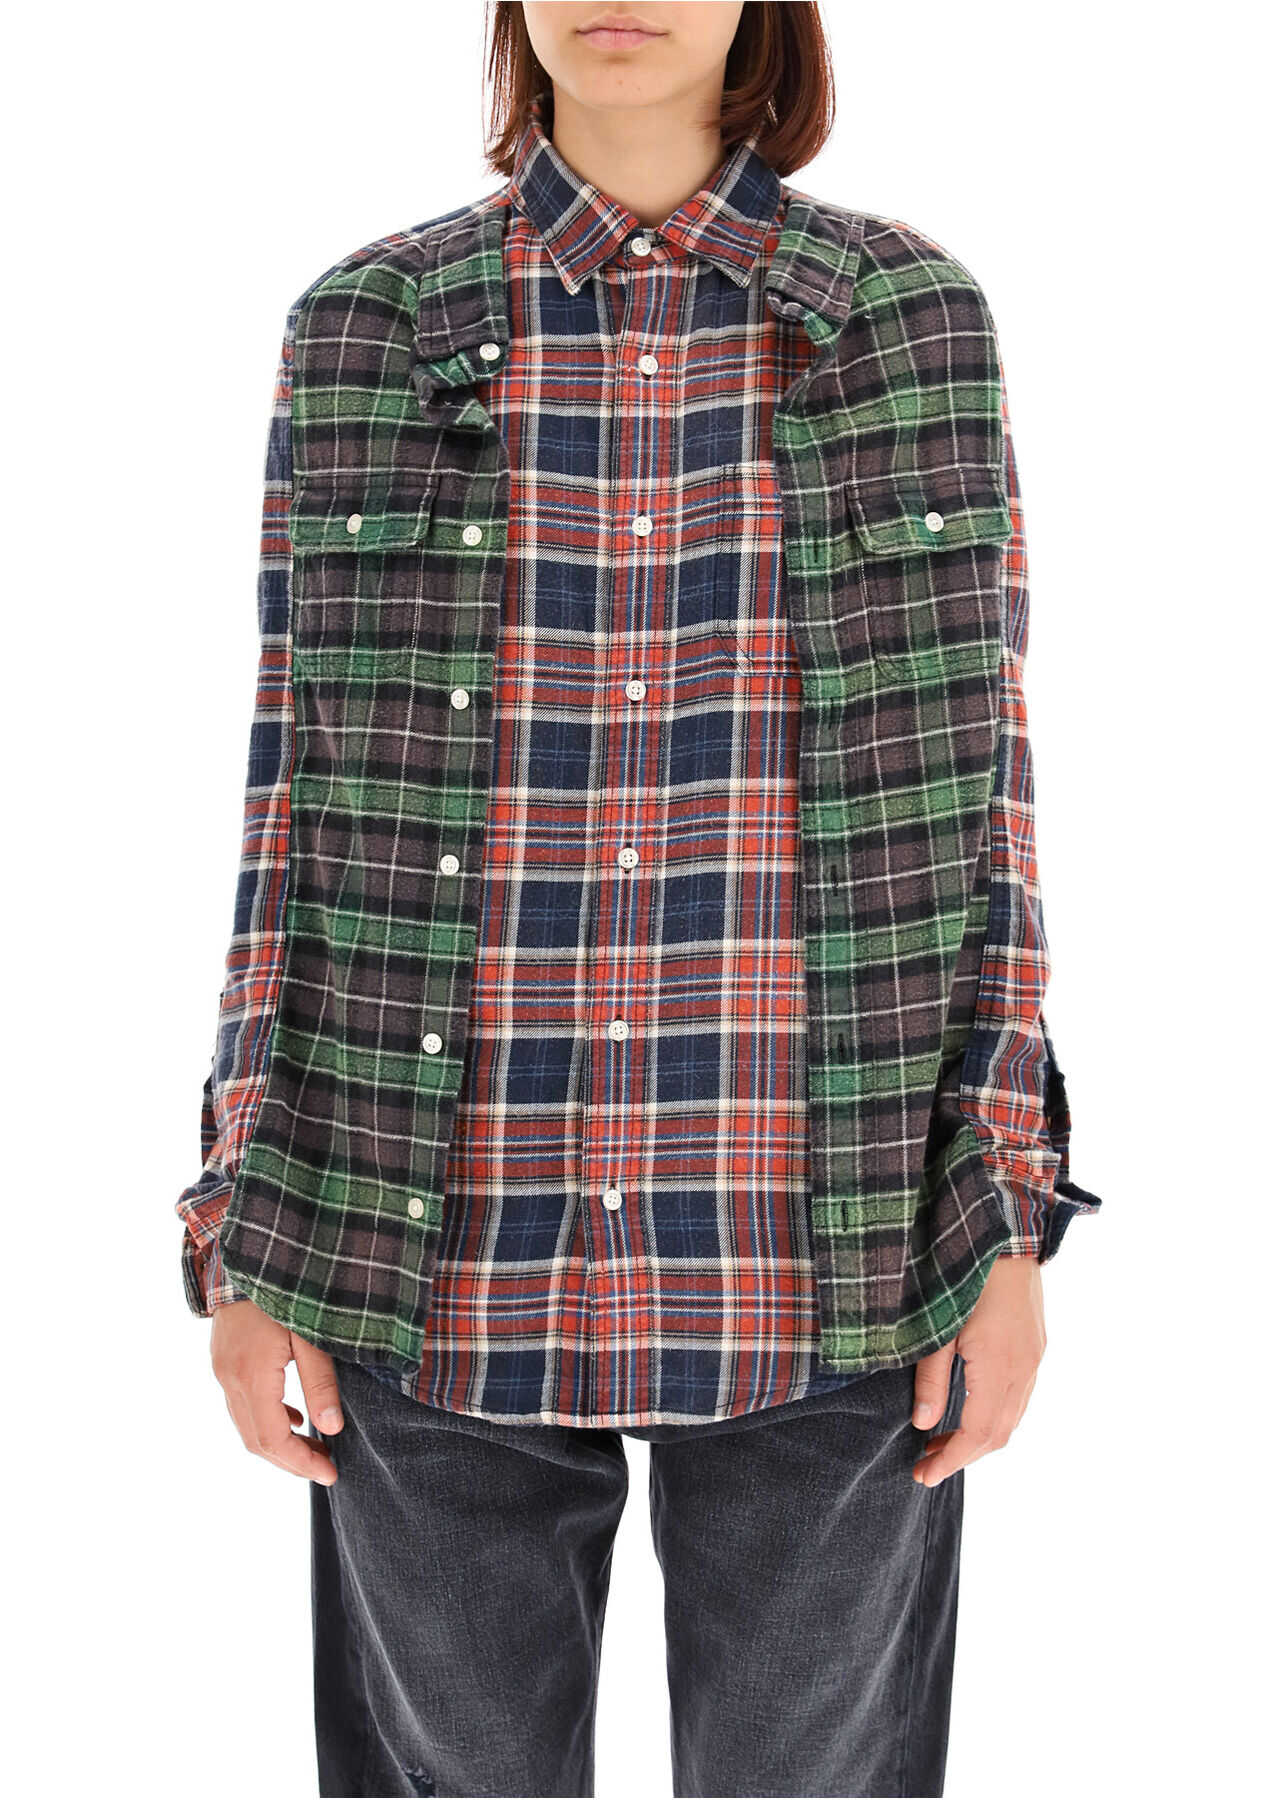 R13 Double Checkered Shirt R13W7625594 RED BLUE PLAID W GREEN image0